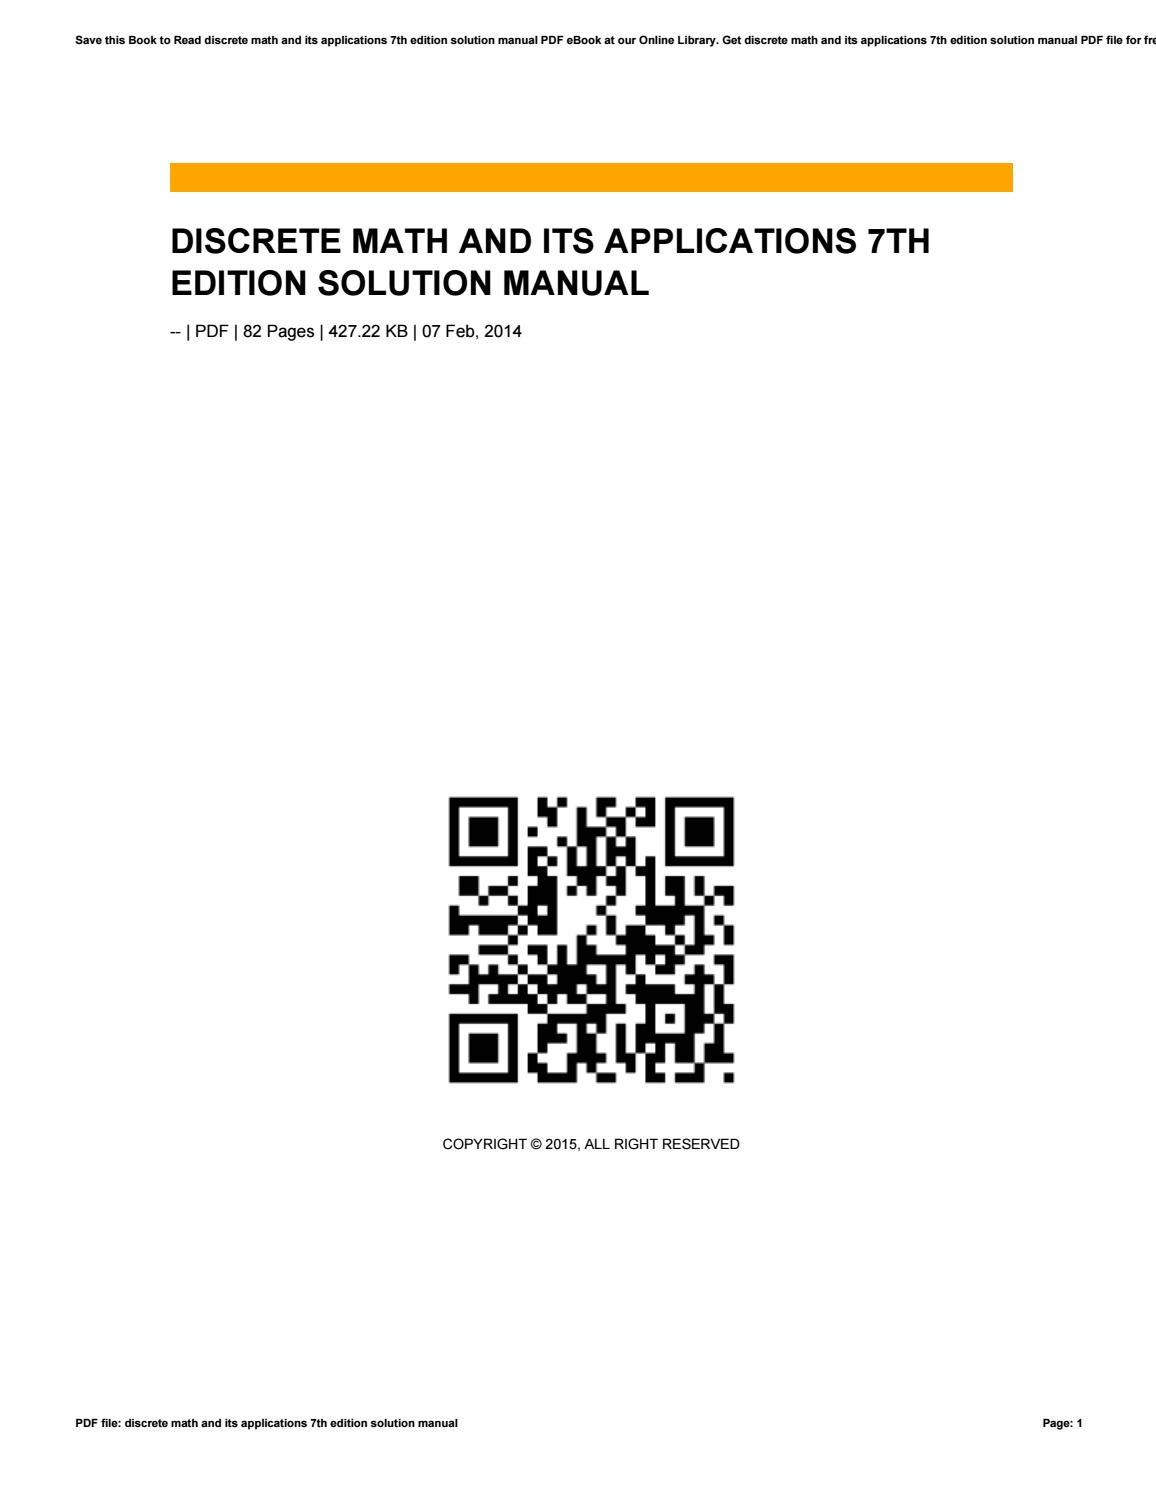 Discrete math and its applications 7th edition solution manual by nezzart64  - issuu